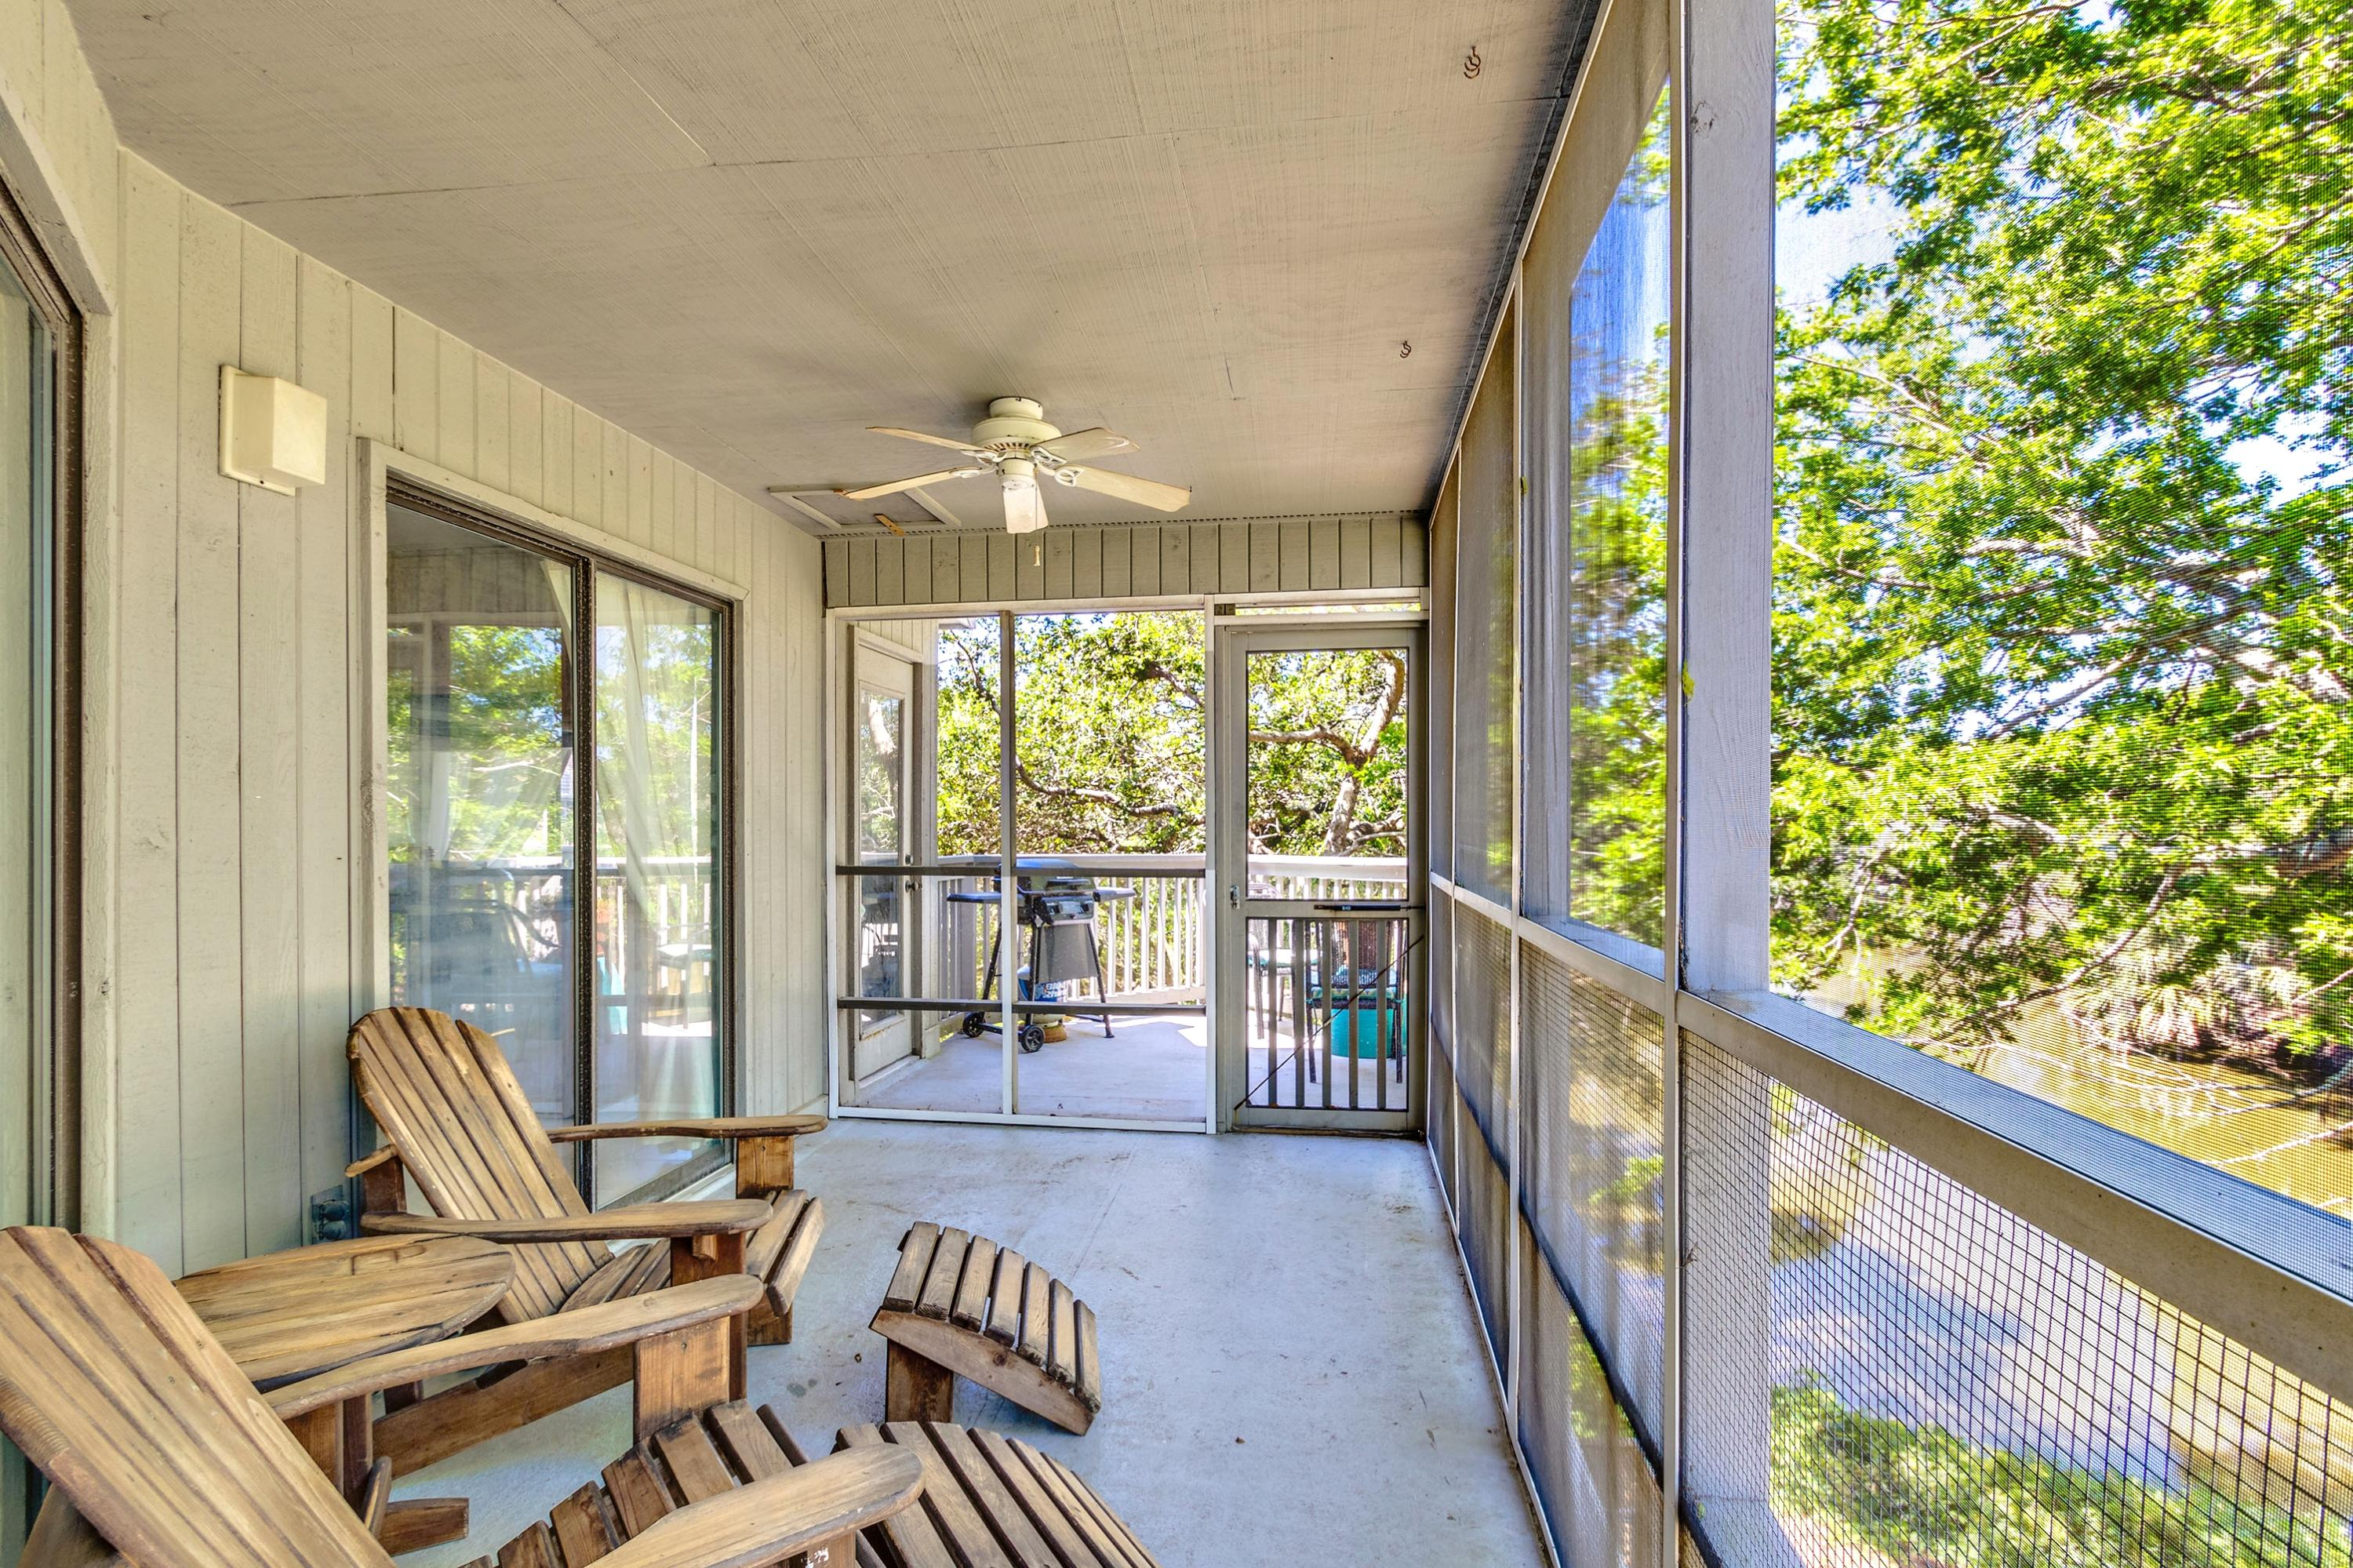 Mariners Cay Homes For Sale - 202 Mariners Cay, Folly Beach, SC - 9